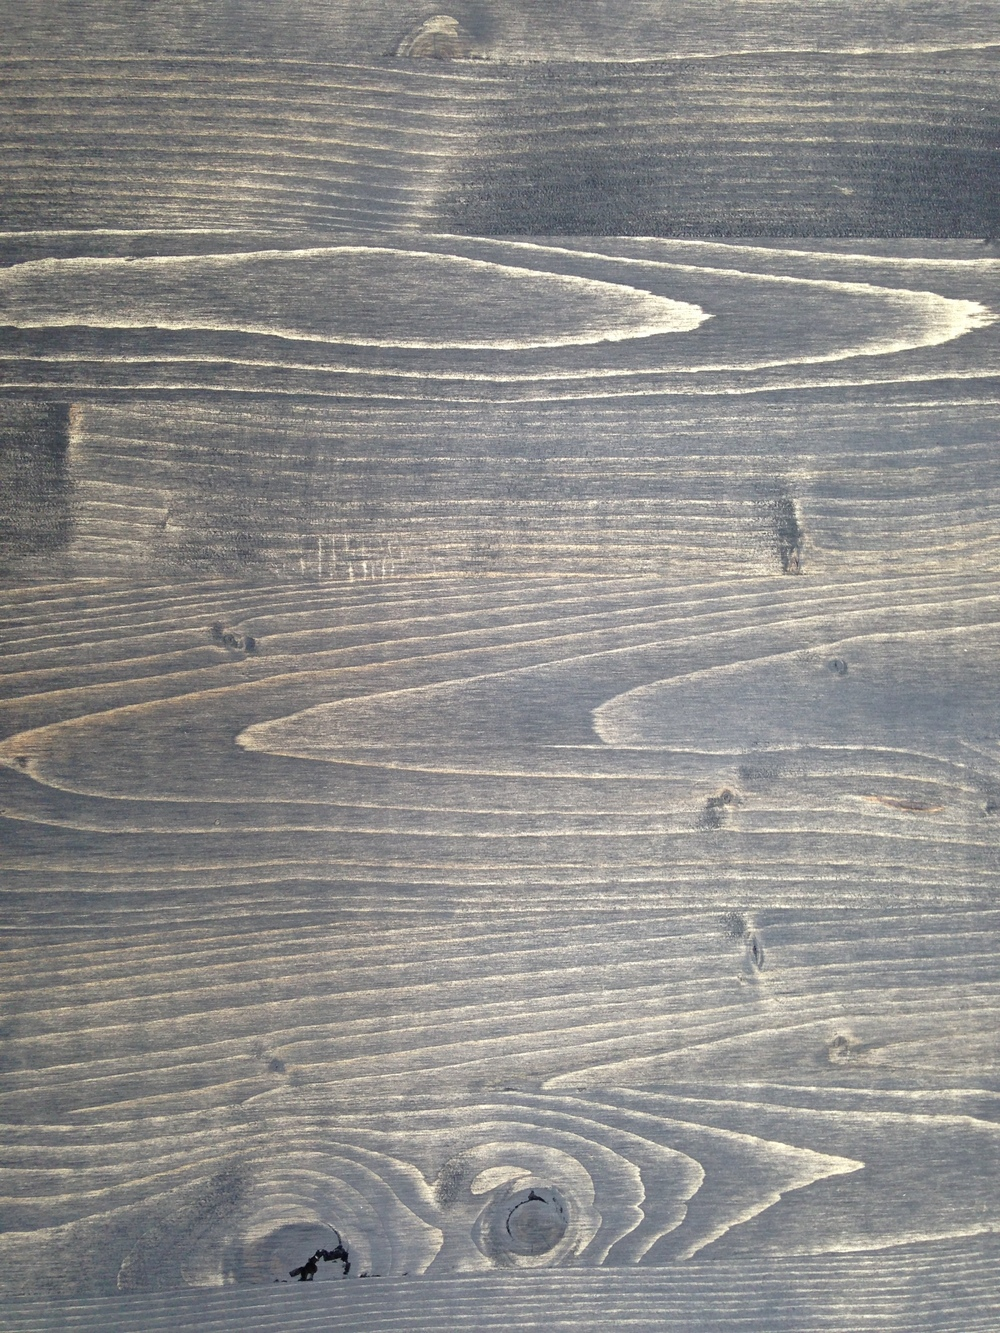 Artwork Display Boards:I applied a light stain wash to the wood in order to let the natural grain show.